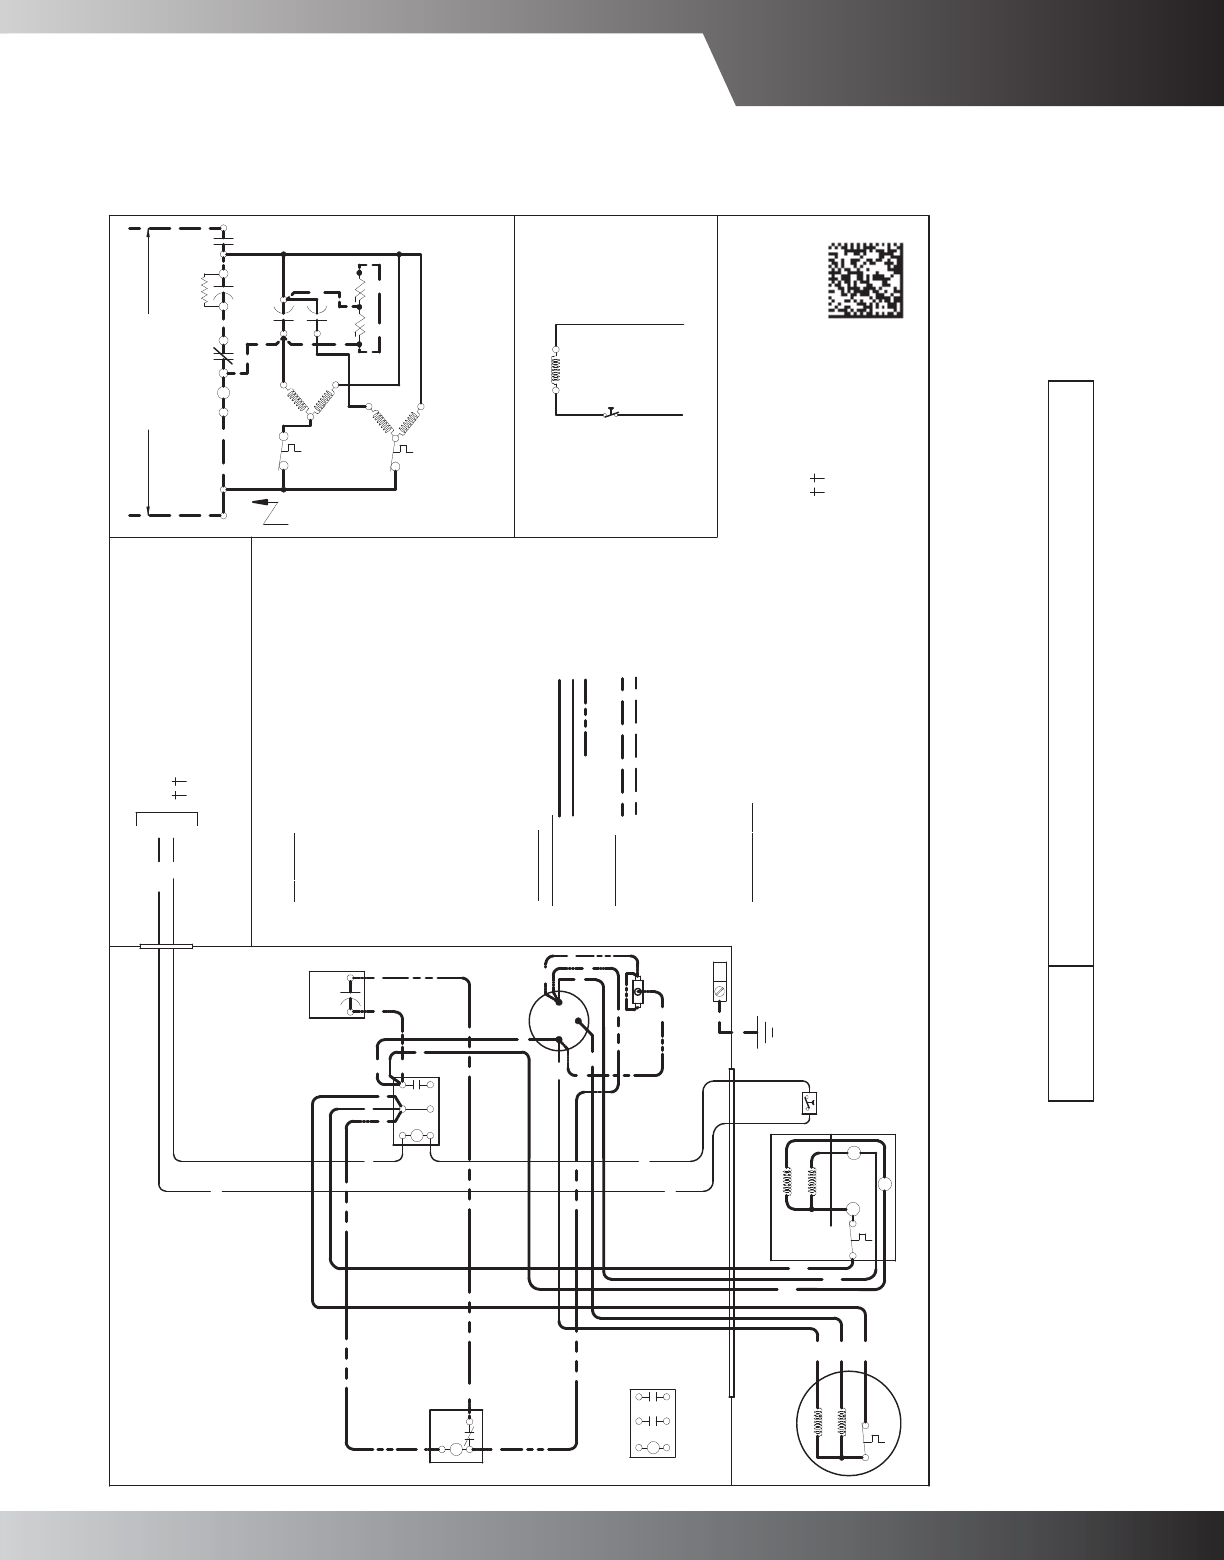 Goodman Mfg Ss Gsx13 Wiring Diagram Gsx130181e Manufacturing Diagrams Thermostat